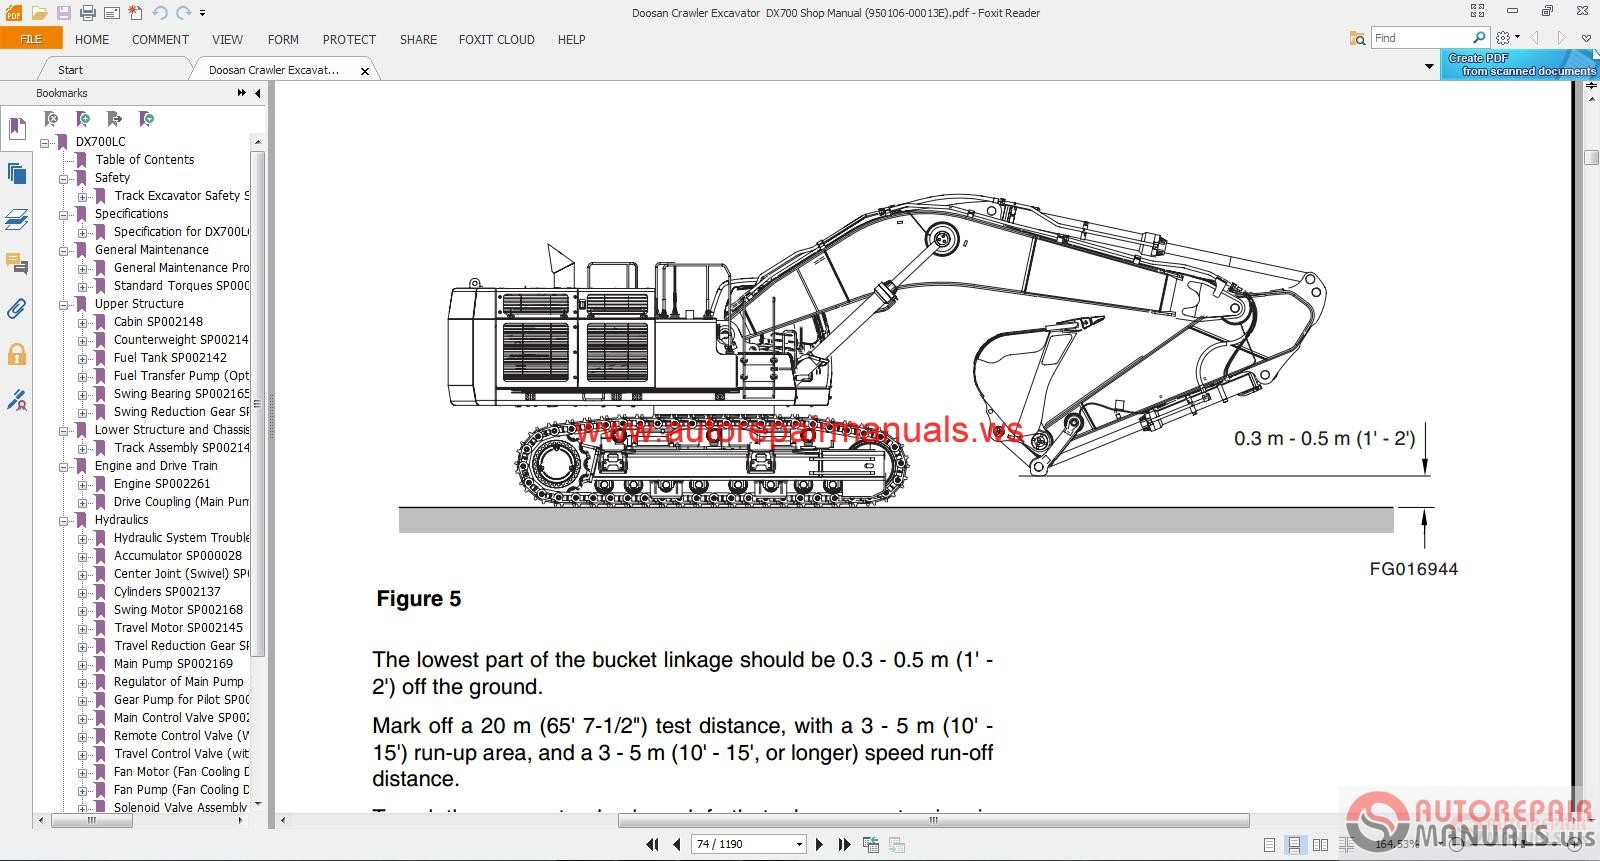 hight resolution of doosan g424fe service manual pdf download g424fe were founded since achieved an unrivalled position world automatic gear shifting cylinder head